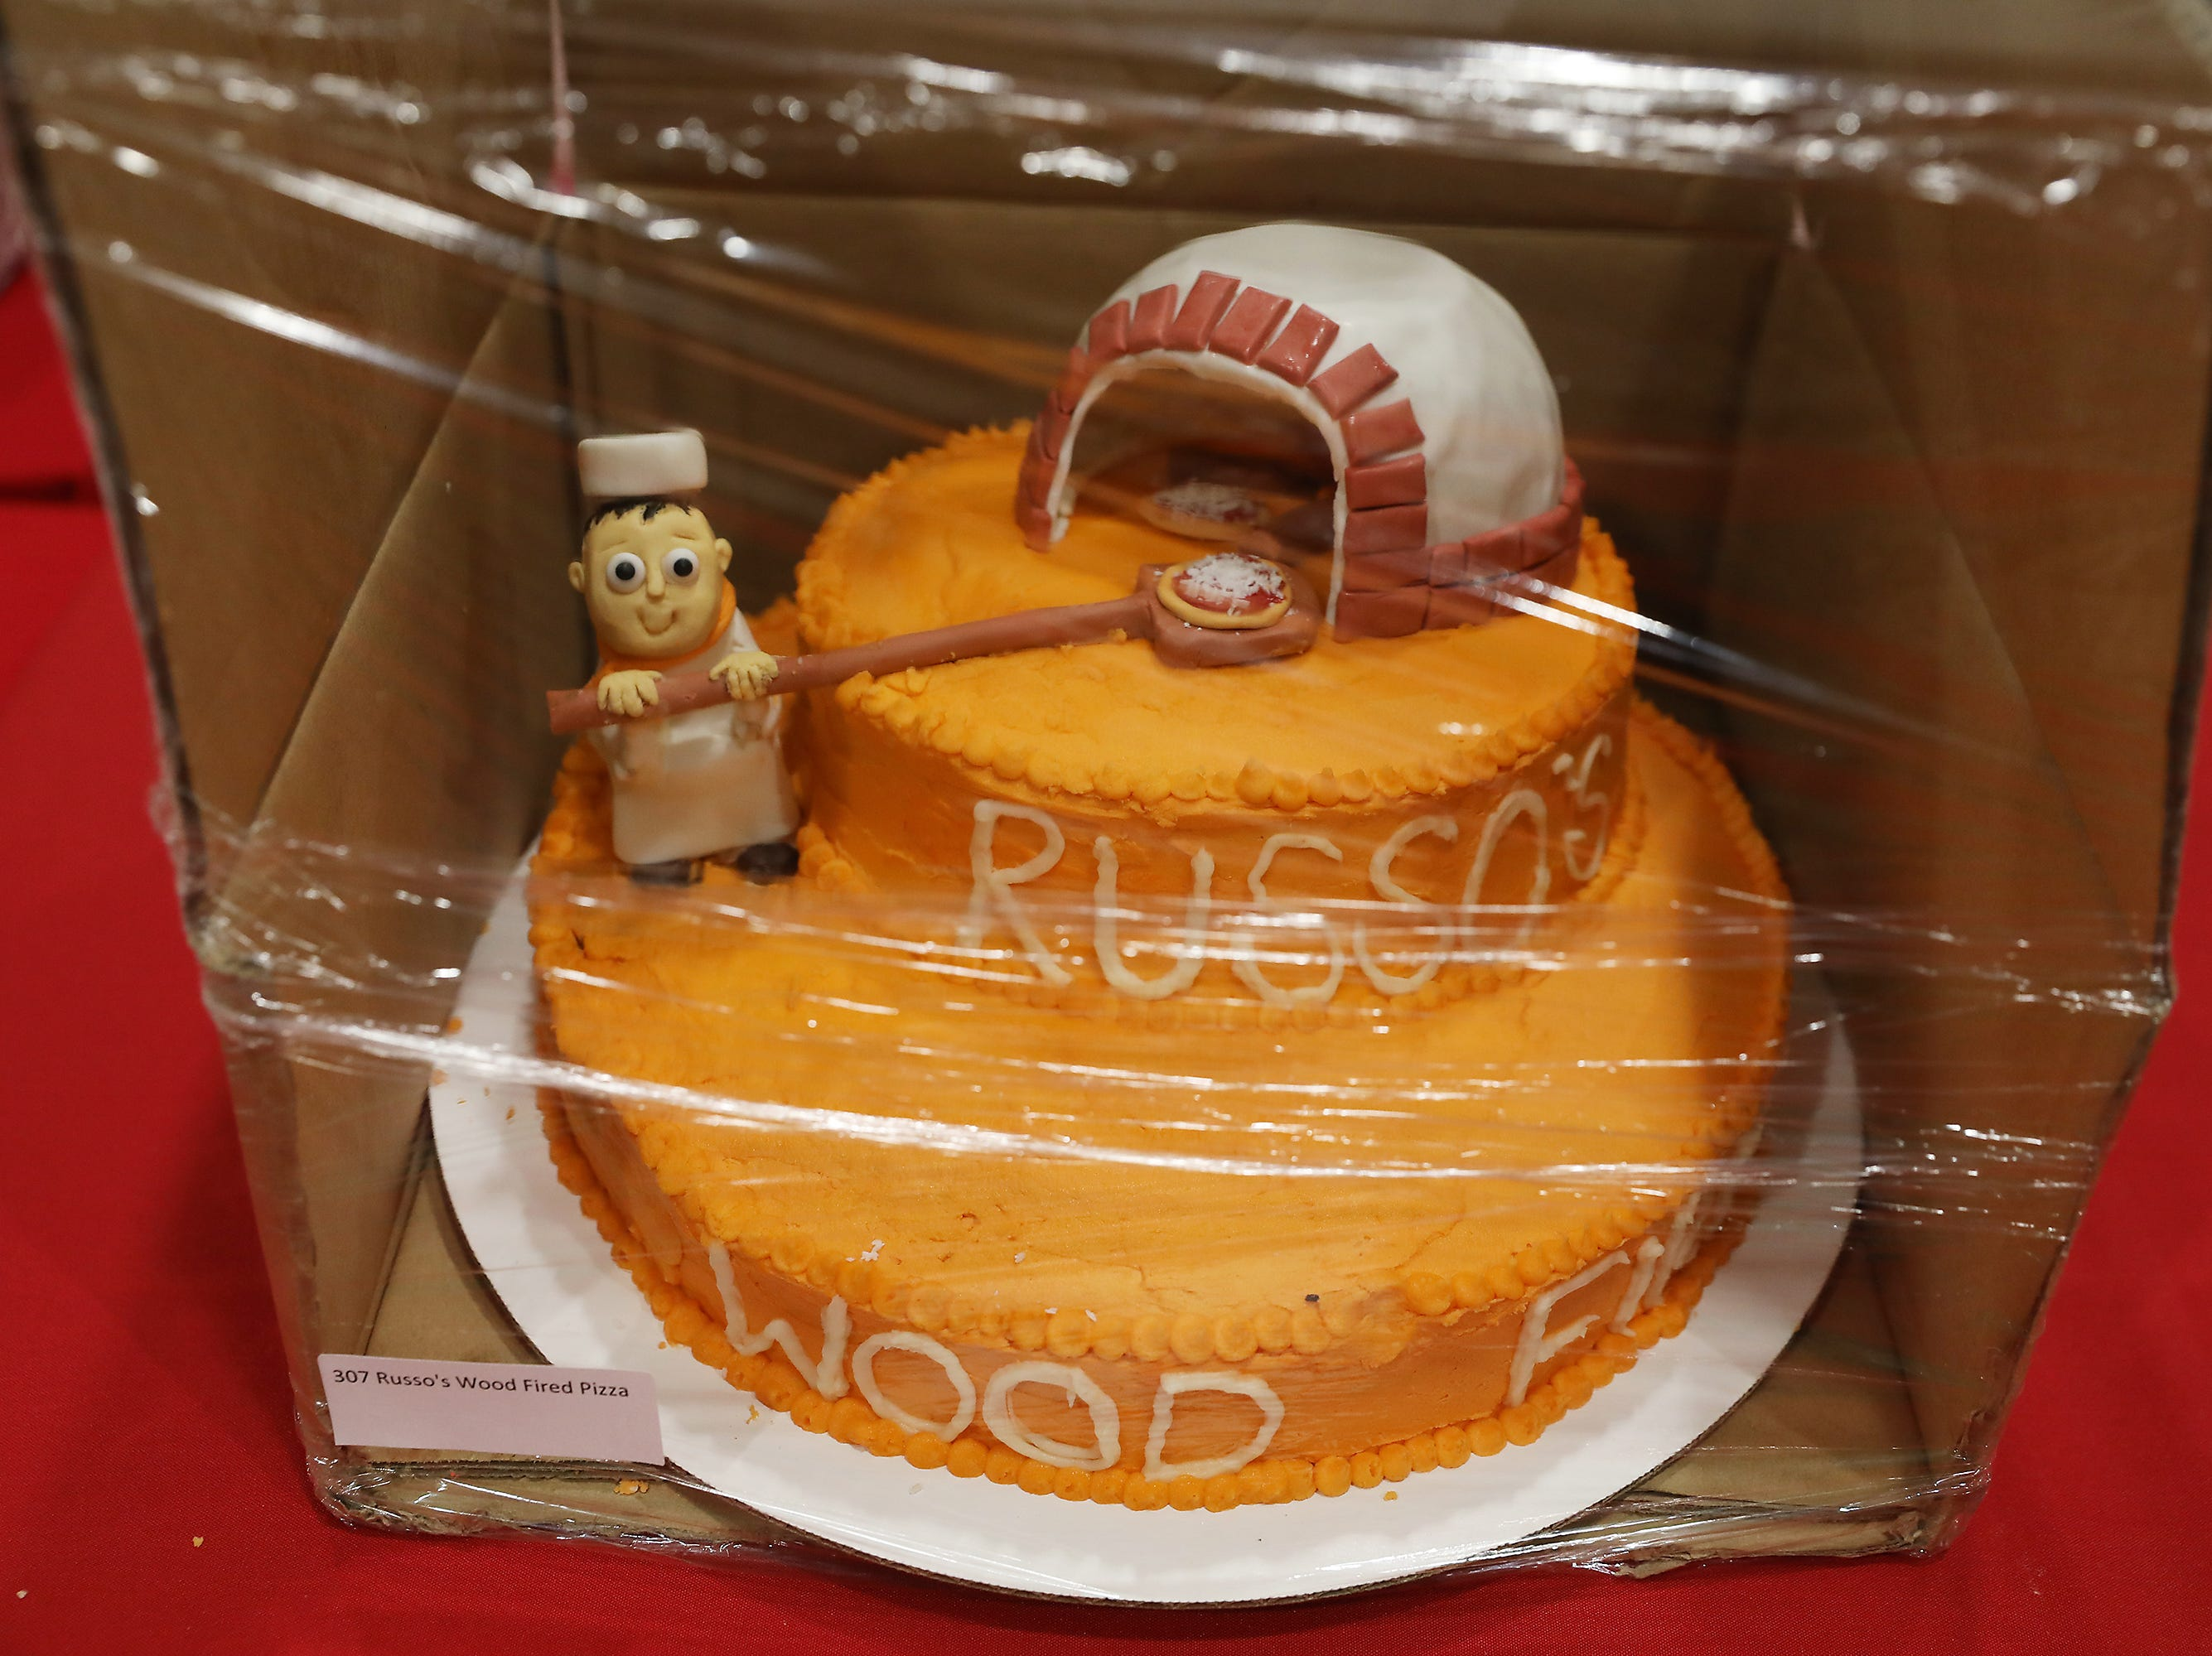 1:15 P.M. Friday cake 307 Russo's Wood Fired Pizza - 2 $25 Russo's gift cards